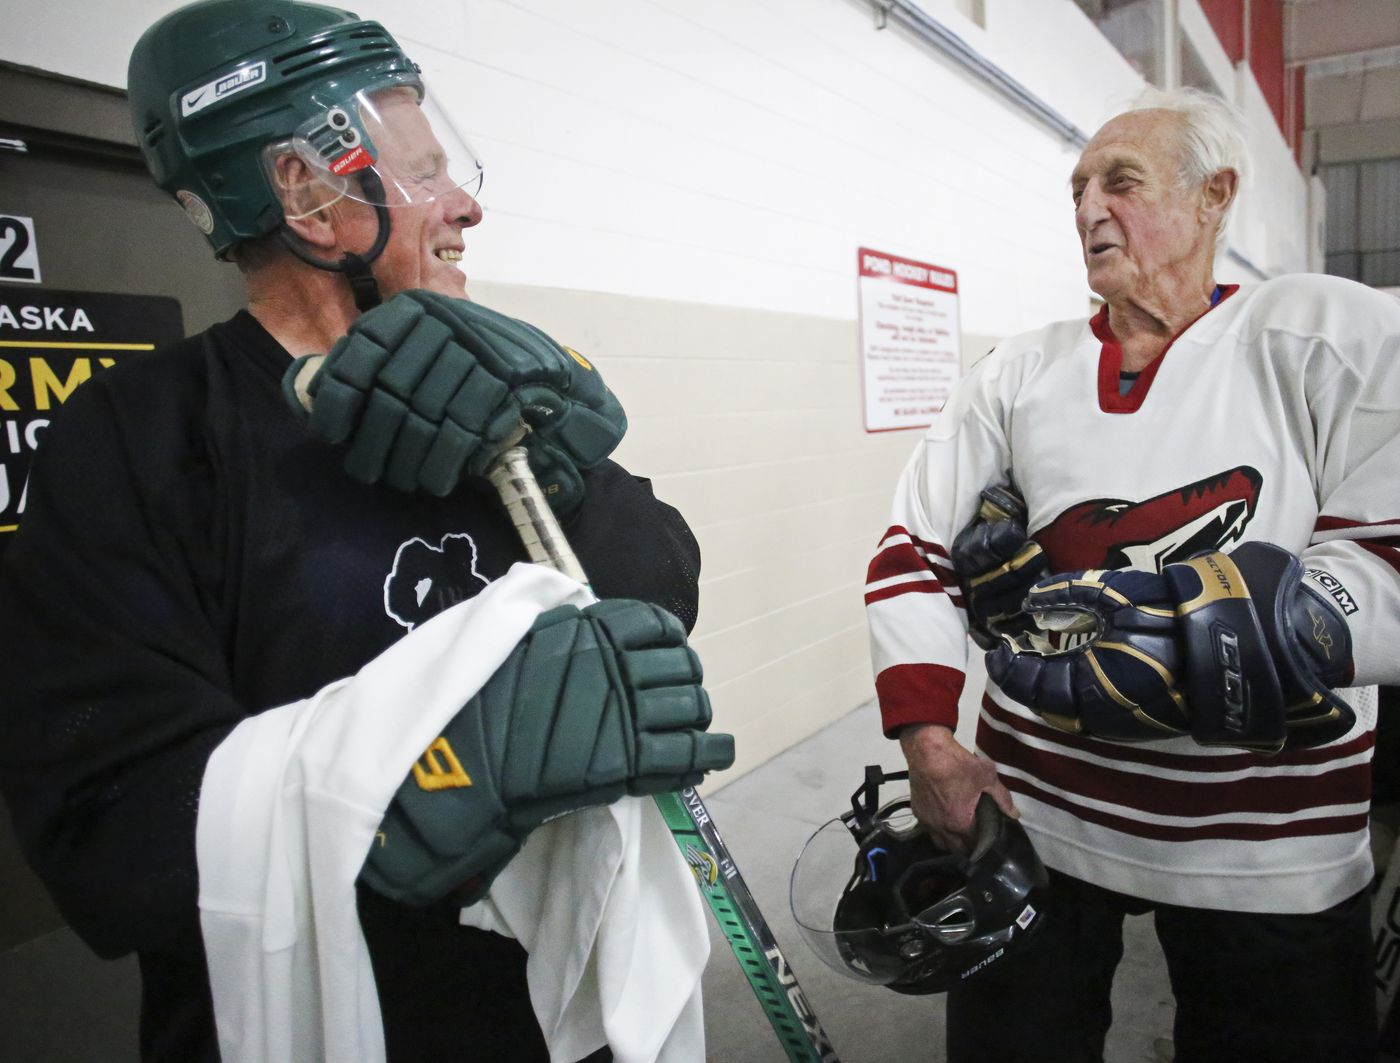 Brush Christiansen, left, and Jimmy Reese talk before heading out onto the ice for a game with the Forty-Niners Hockey Club last month at the O'Malley Ice & Sports Center. (Emily Mesner / ADN)